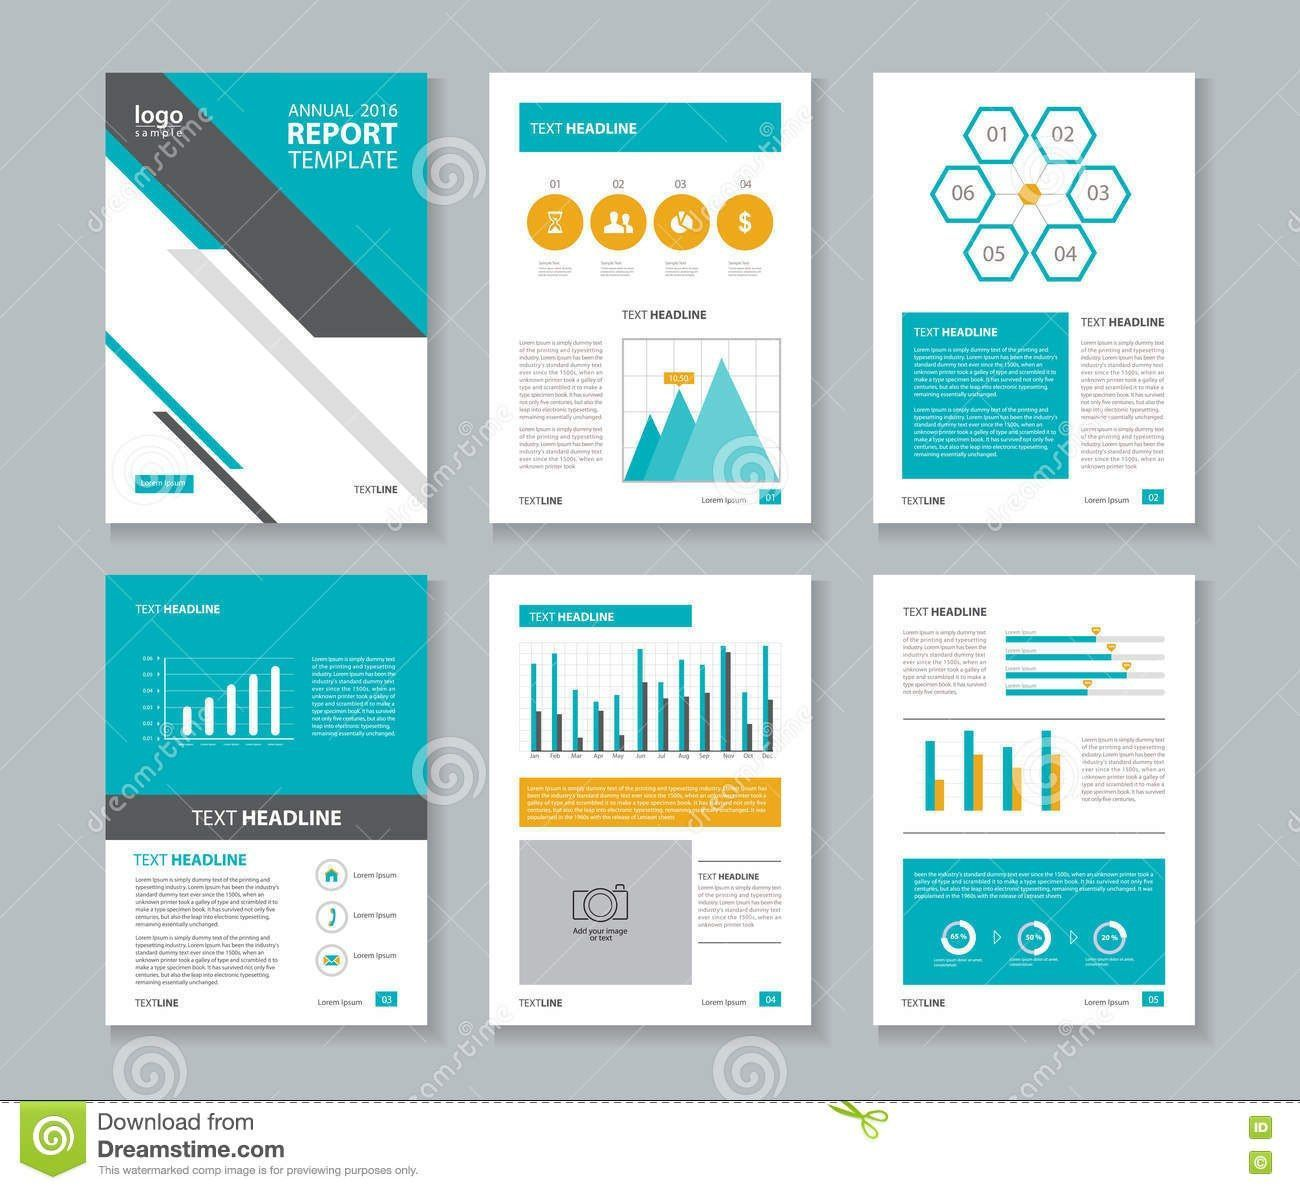 Microsoft Word Report Templates from www.addictionary.org